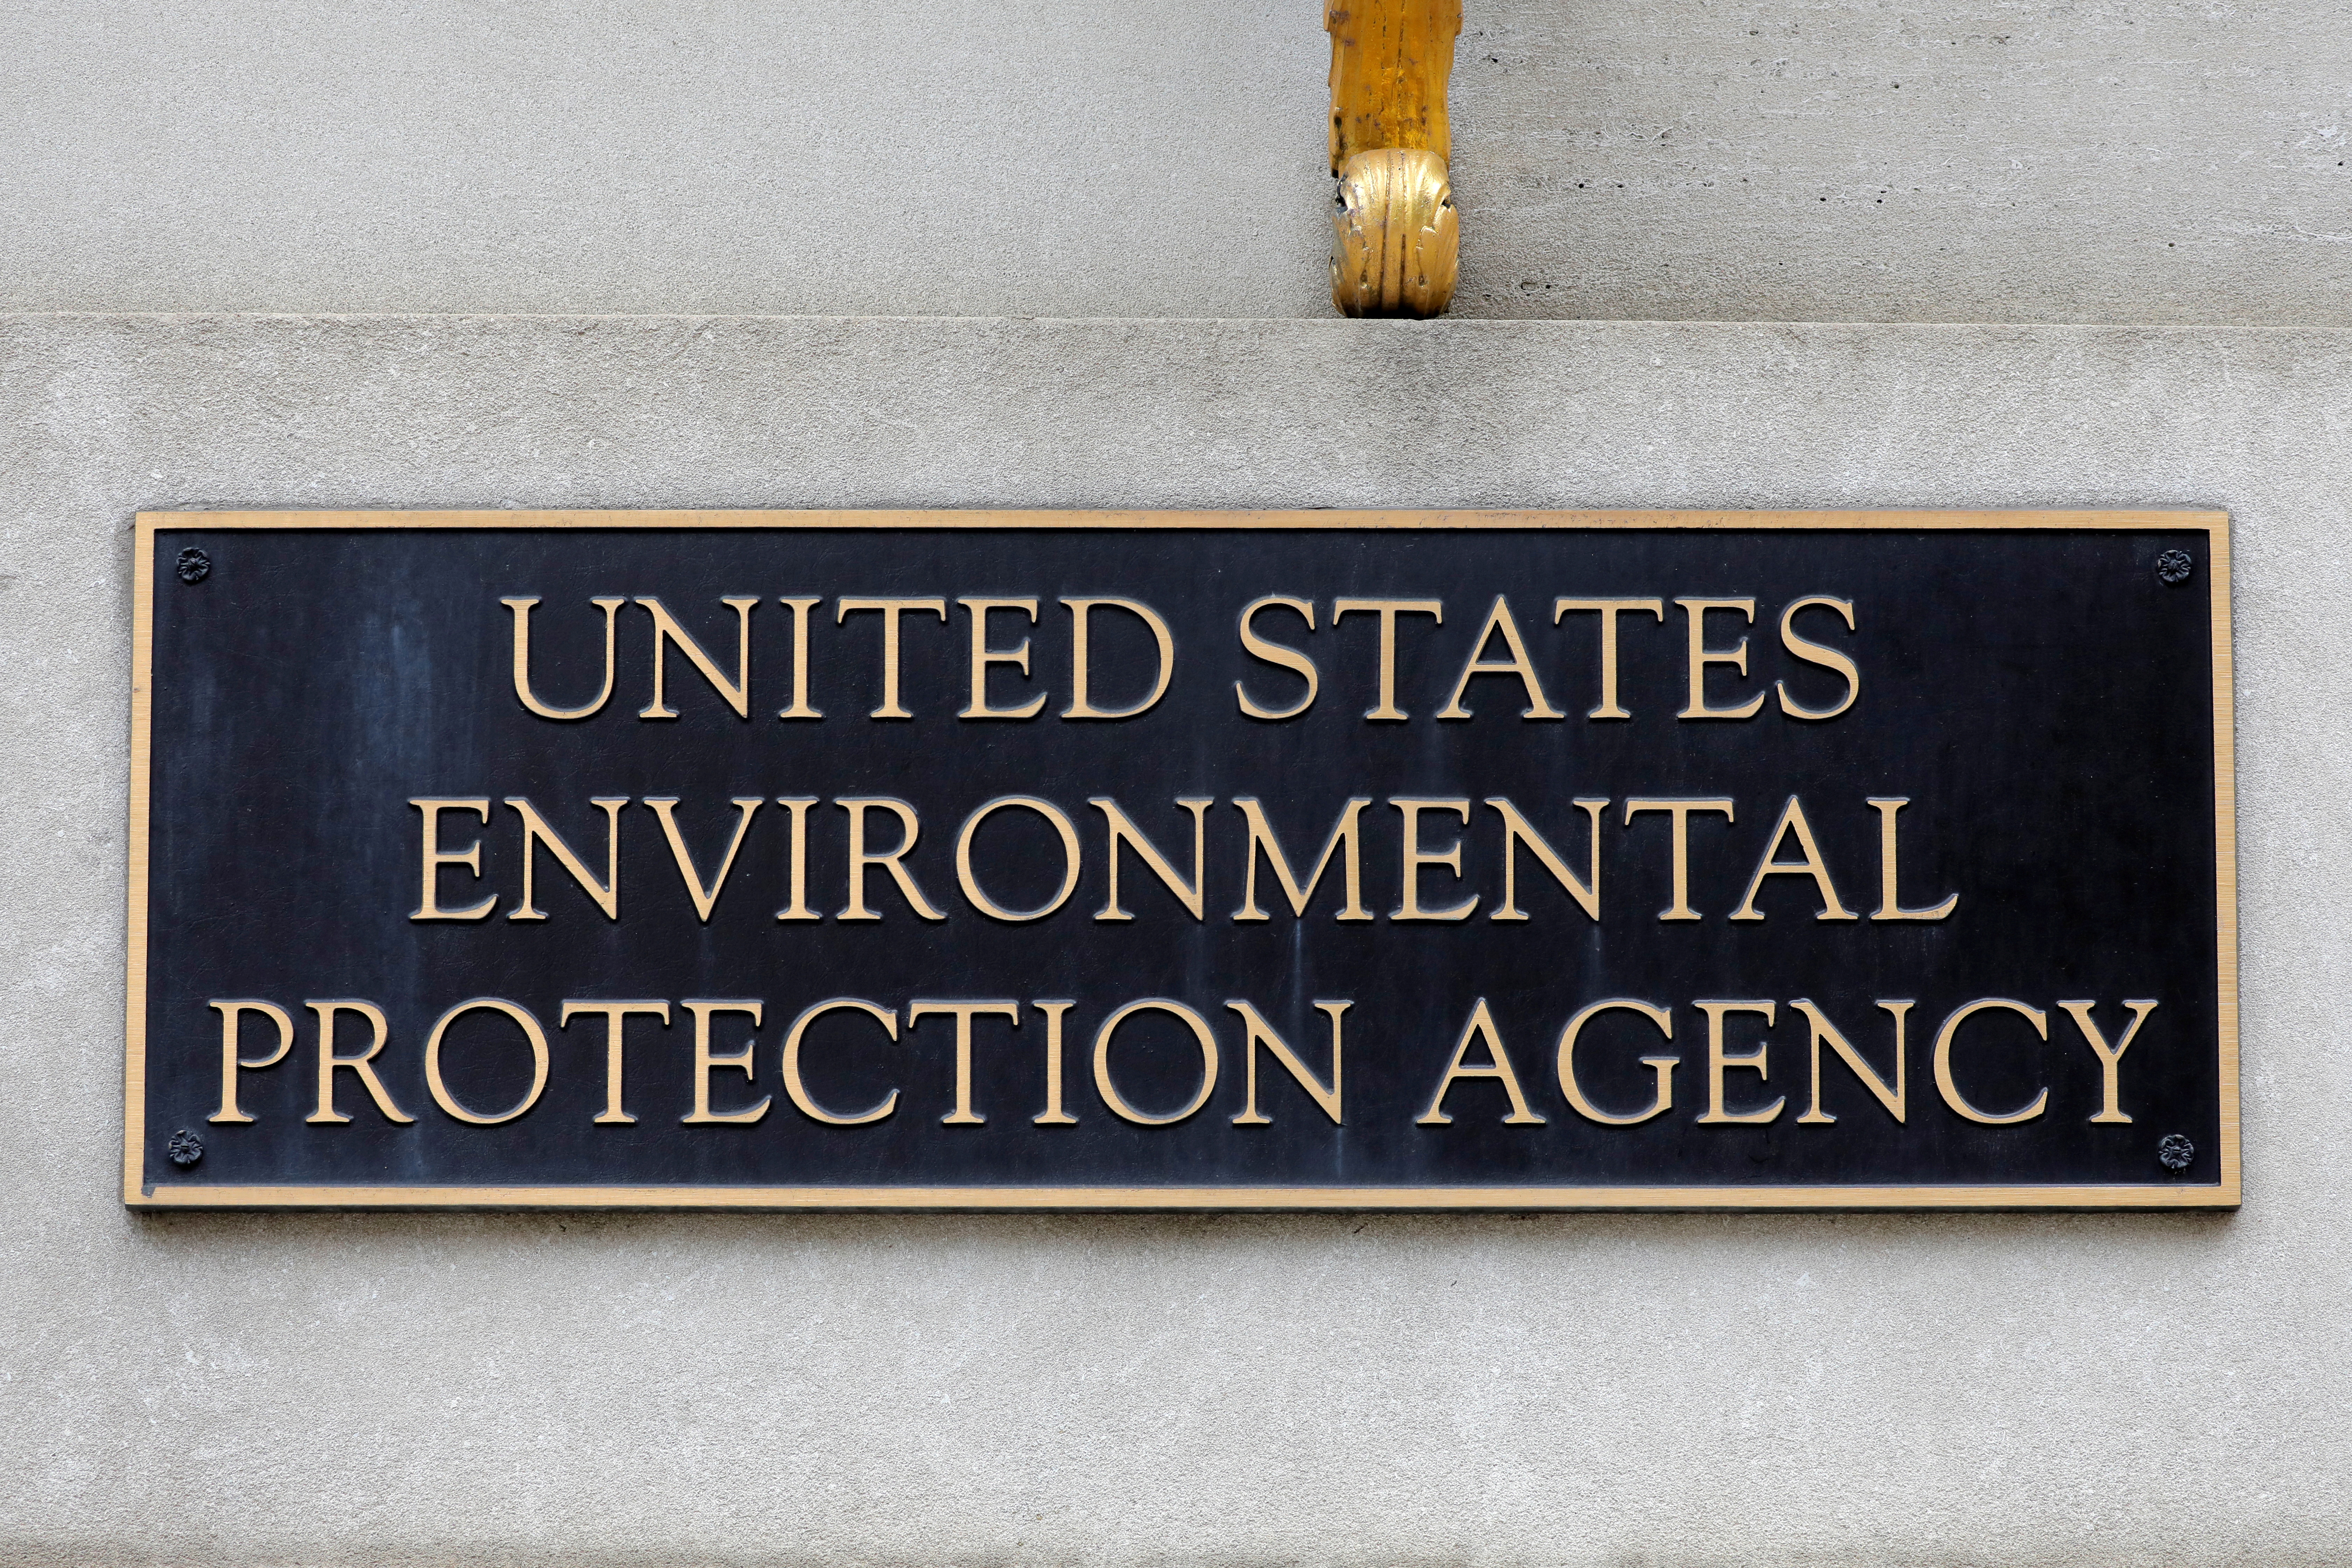 Headquarters of the Environmental Protection Agency in Washington, D.C. REUTERS/Andrew Kelly